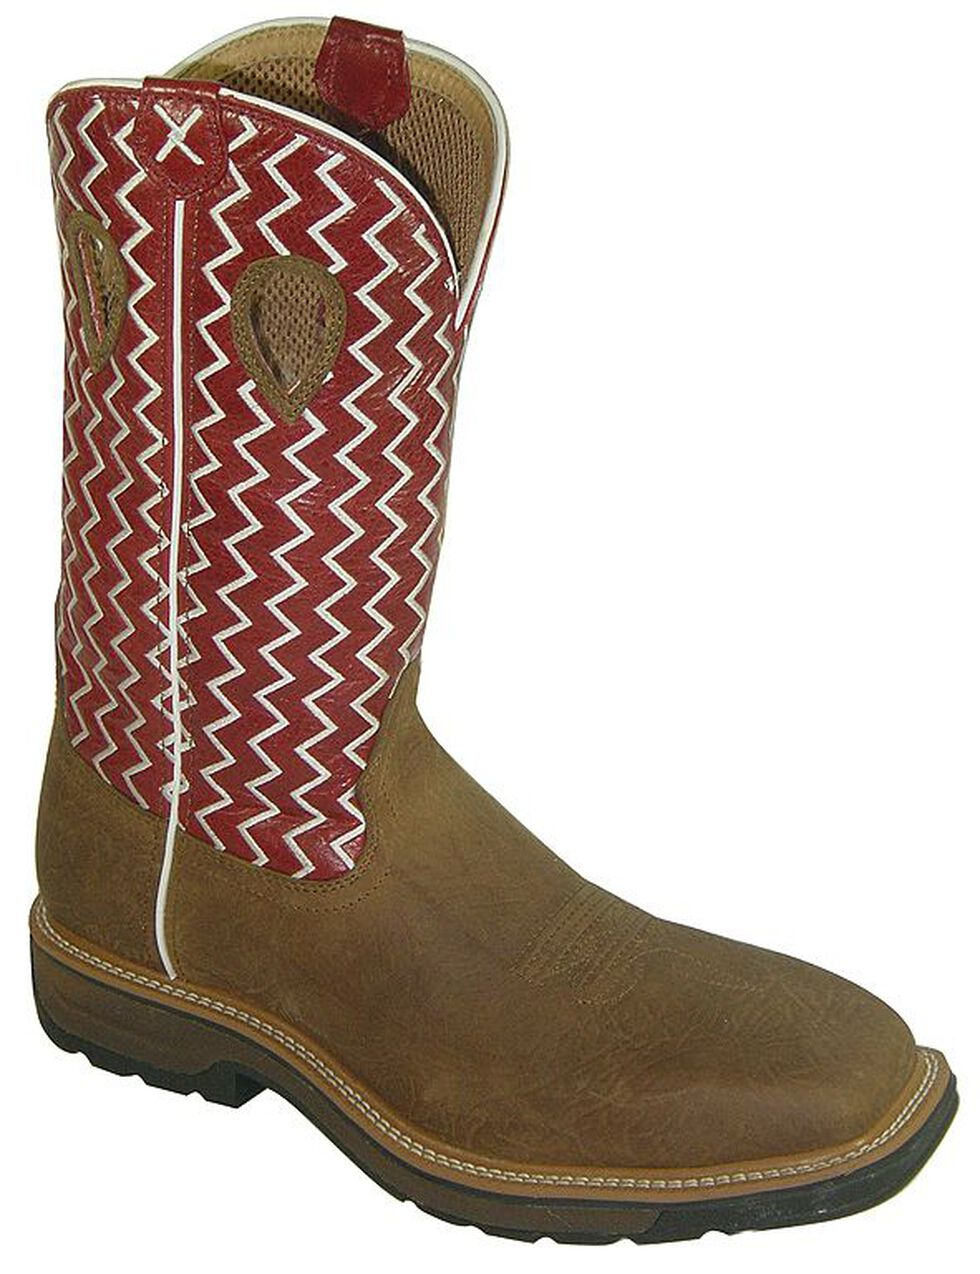 Twisted X Lite Pull-On Work Boots - Square Toe, Distressed, hi-res